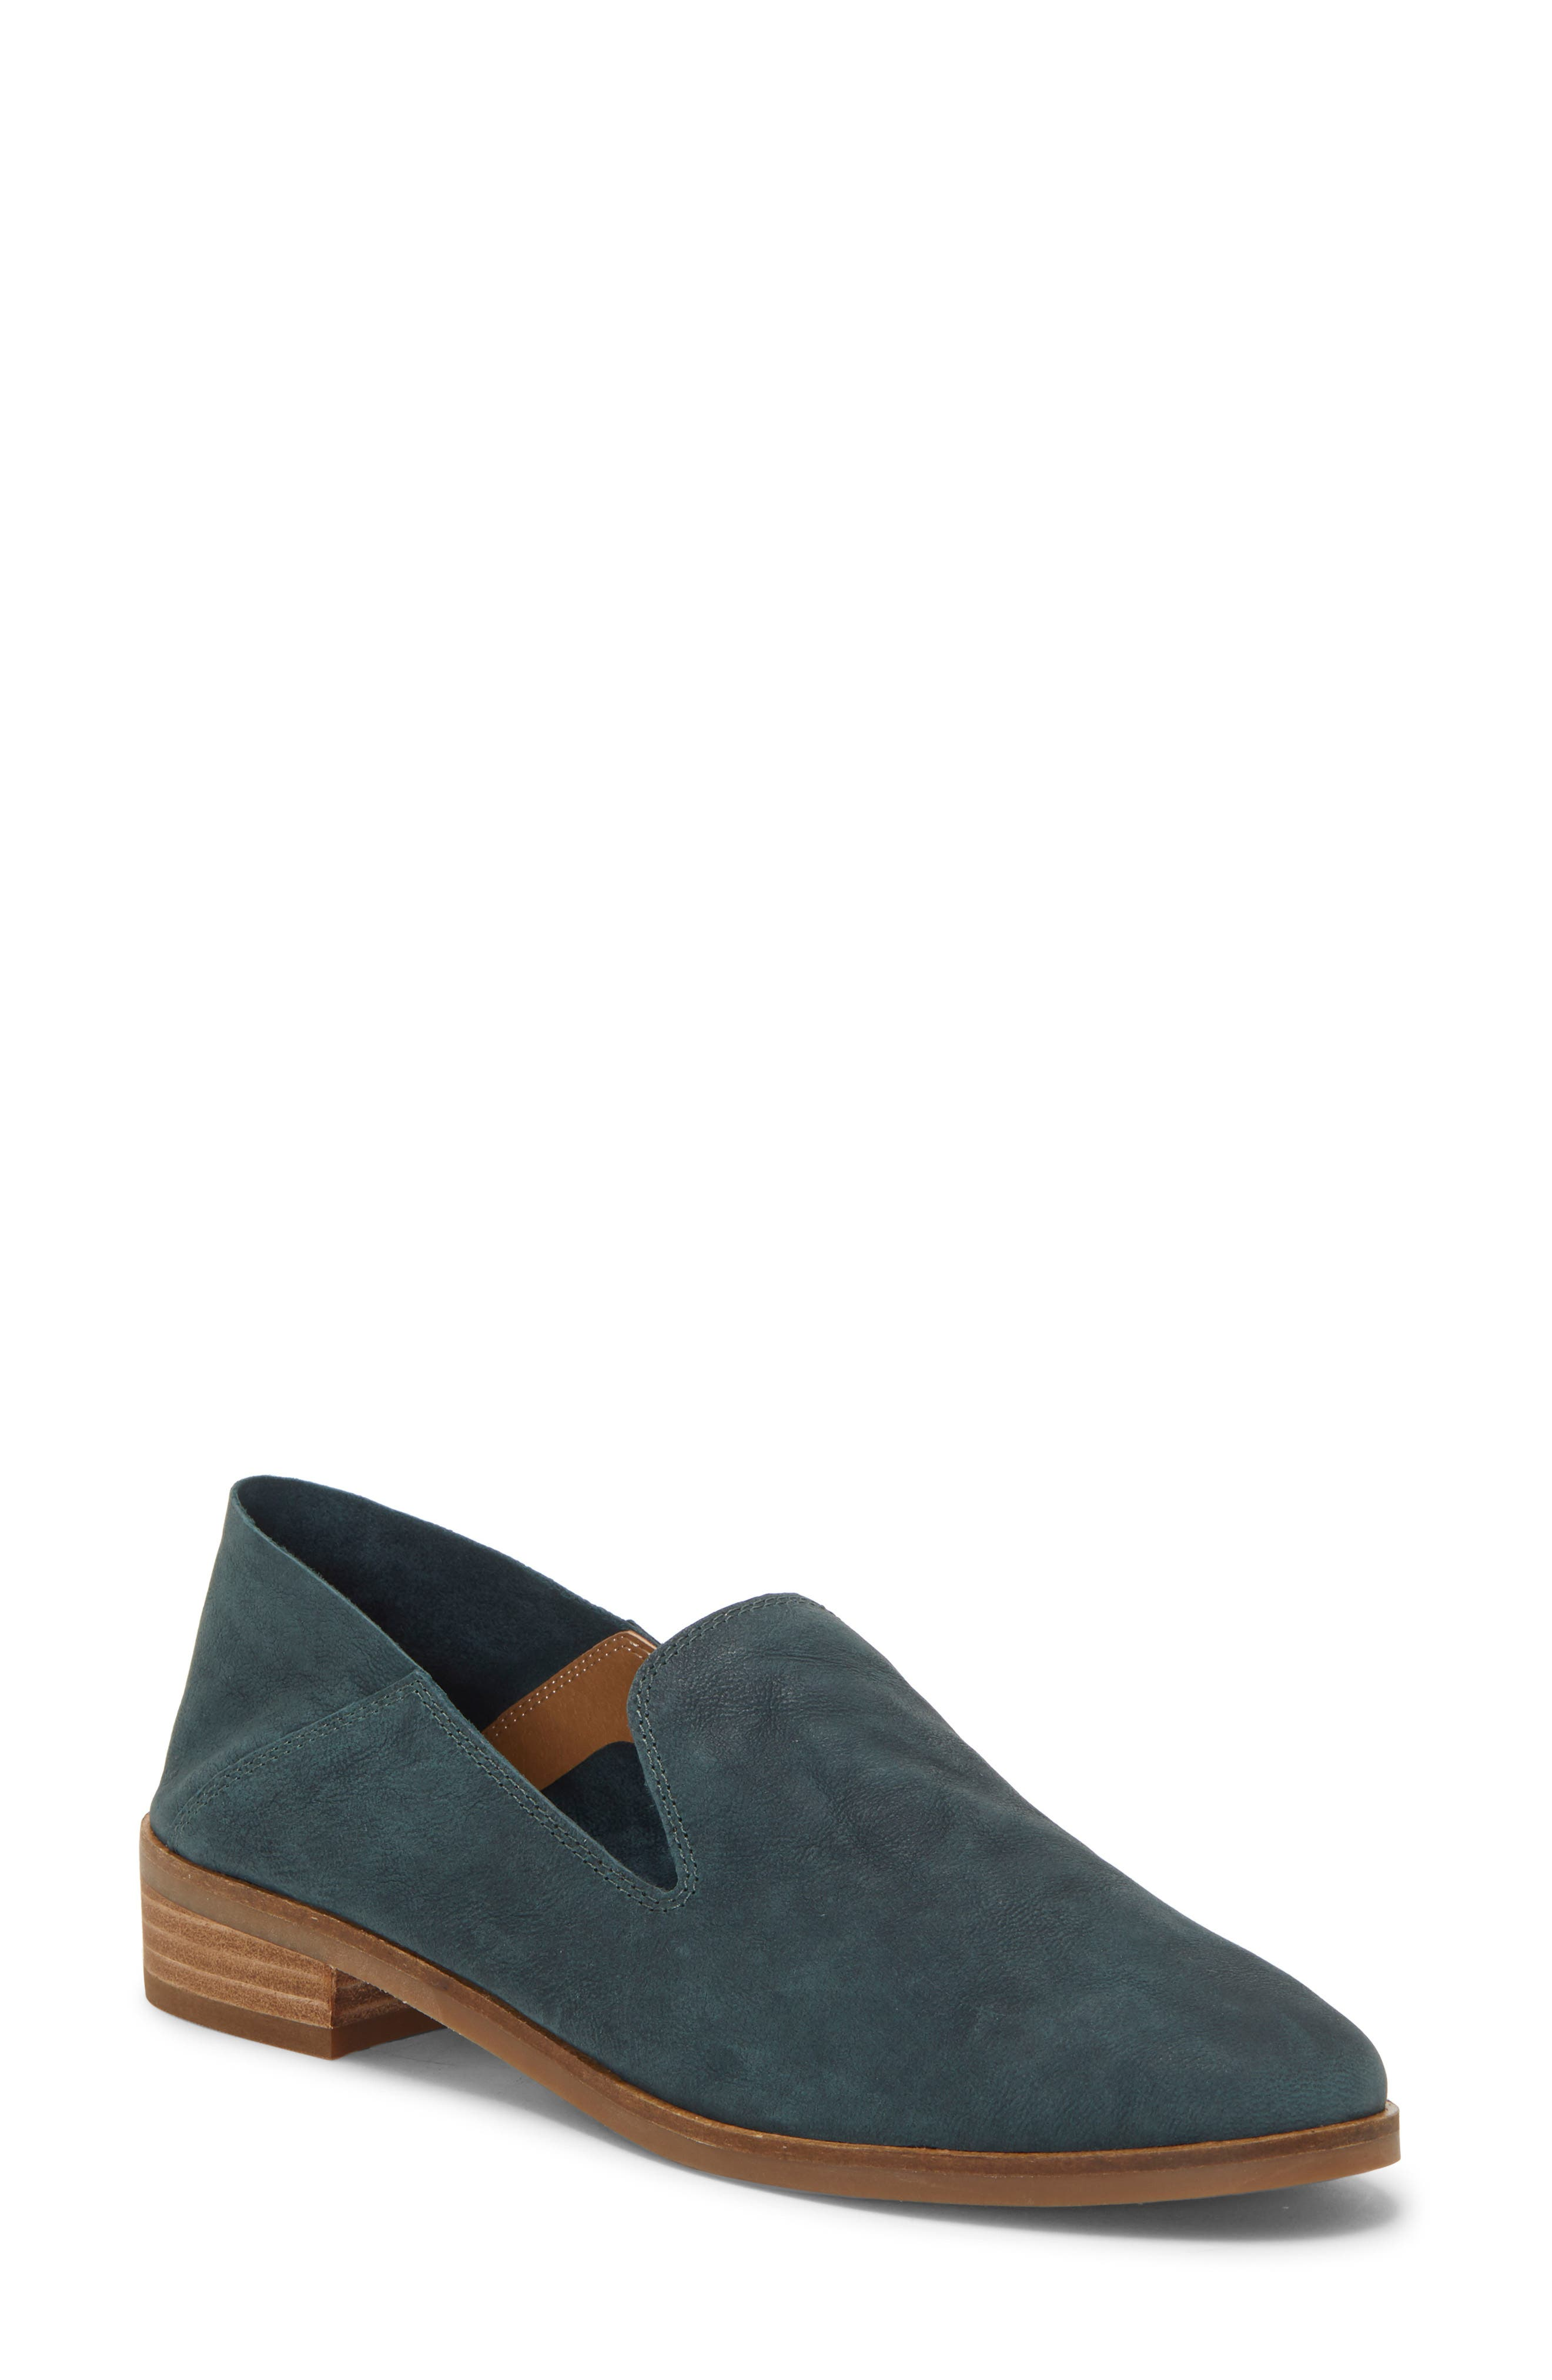 LUCKY BRAND, Cahill Flat, Main thumbnail 1, color, KELP LEATHER